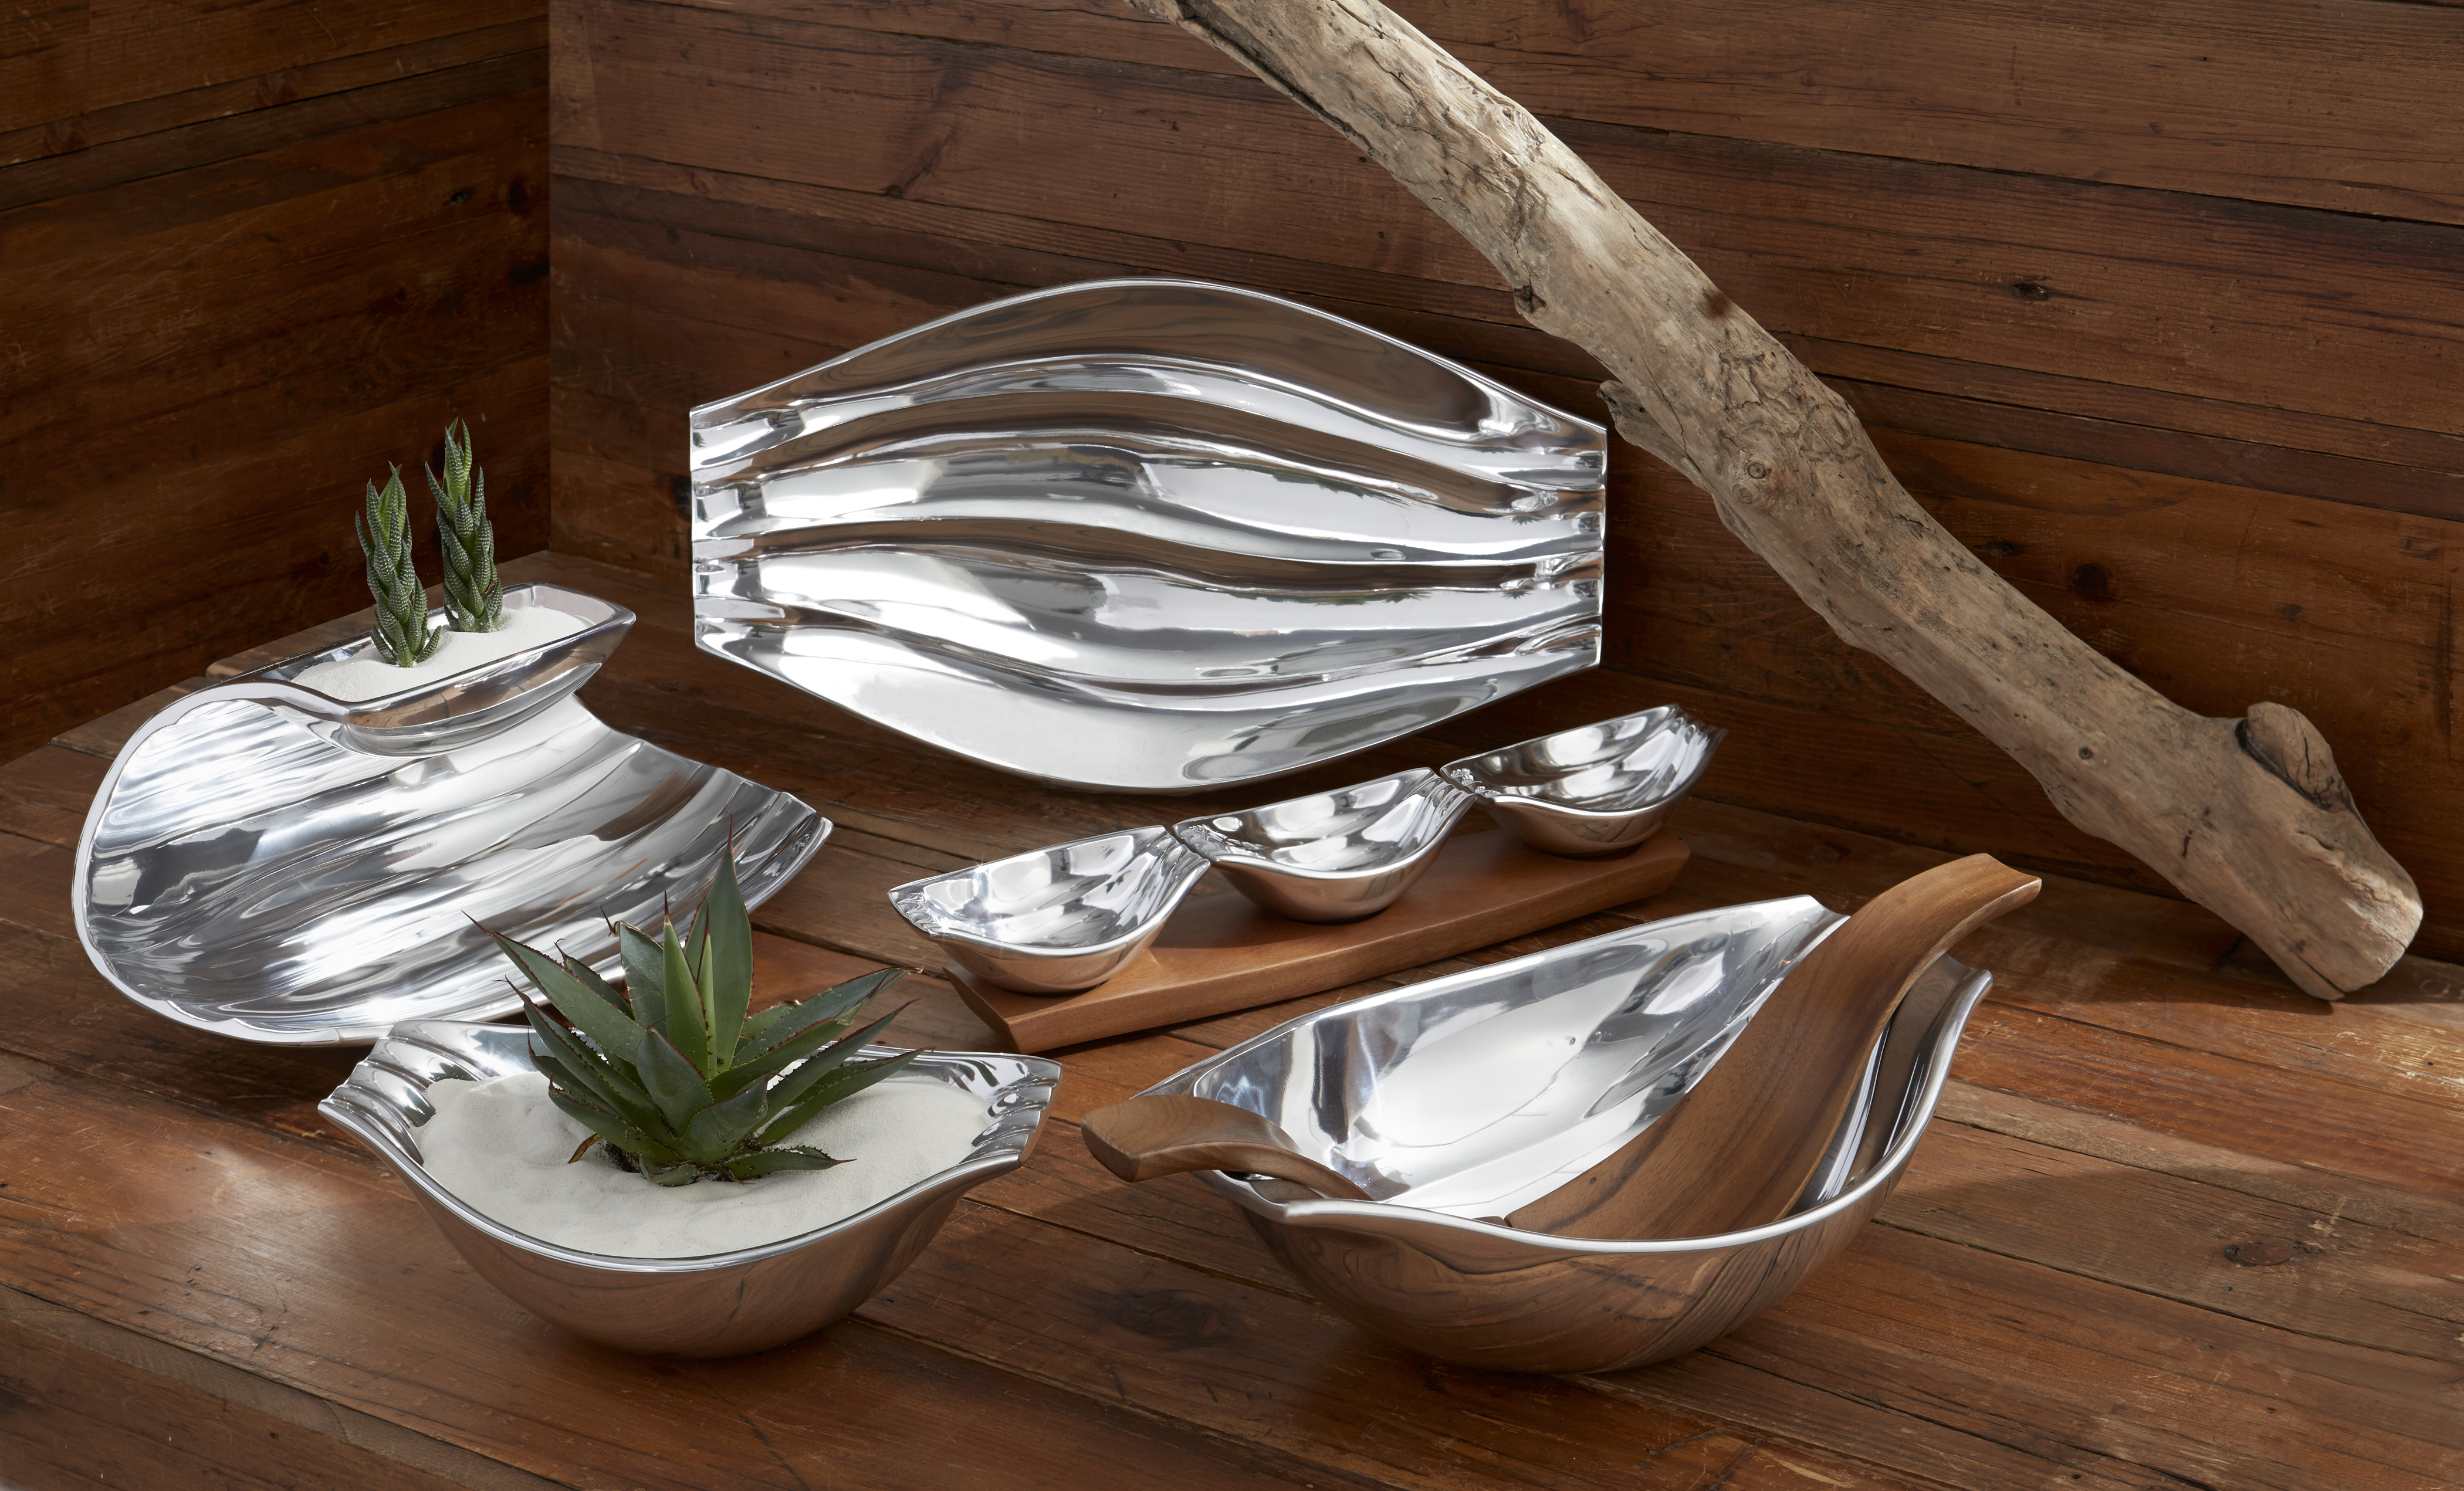 Chic nambe on tiekwood for interior decor ideas with nambe cookware